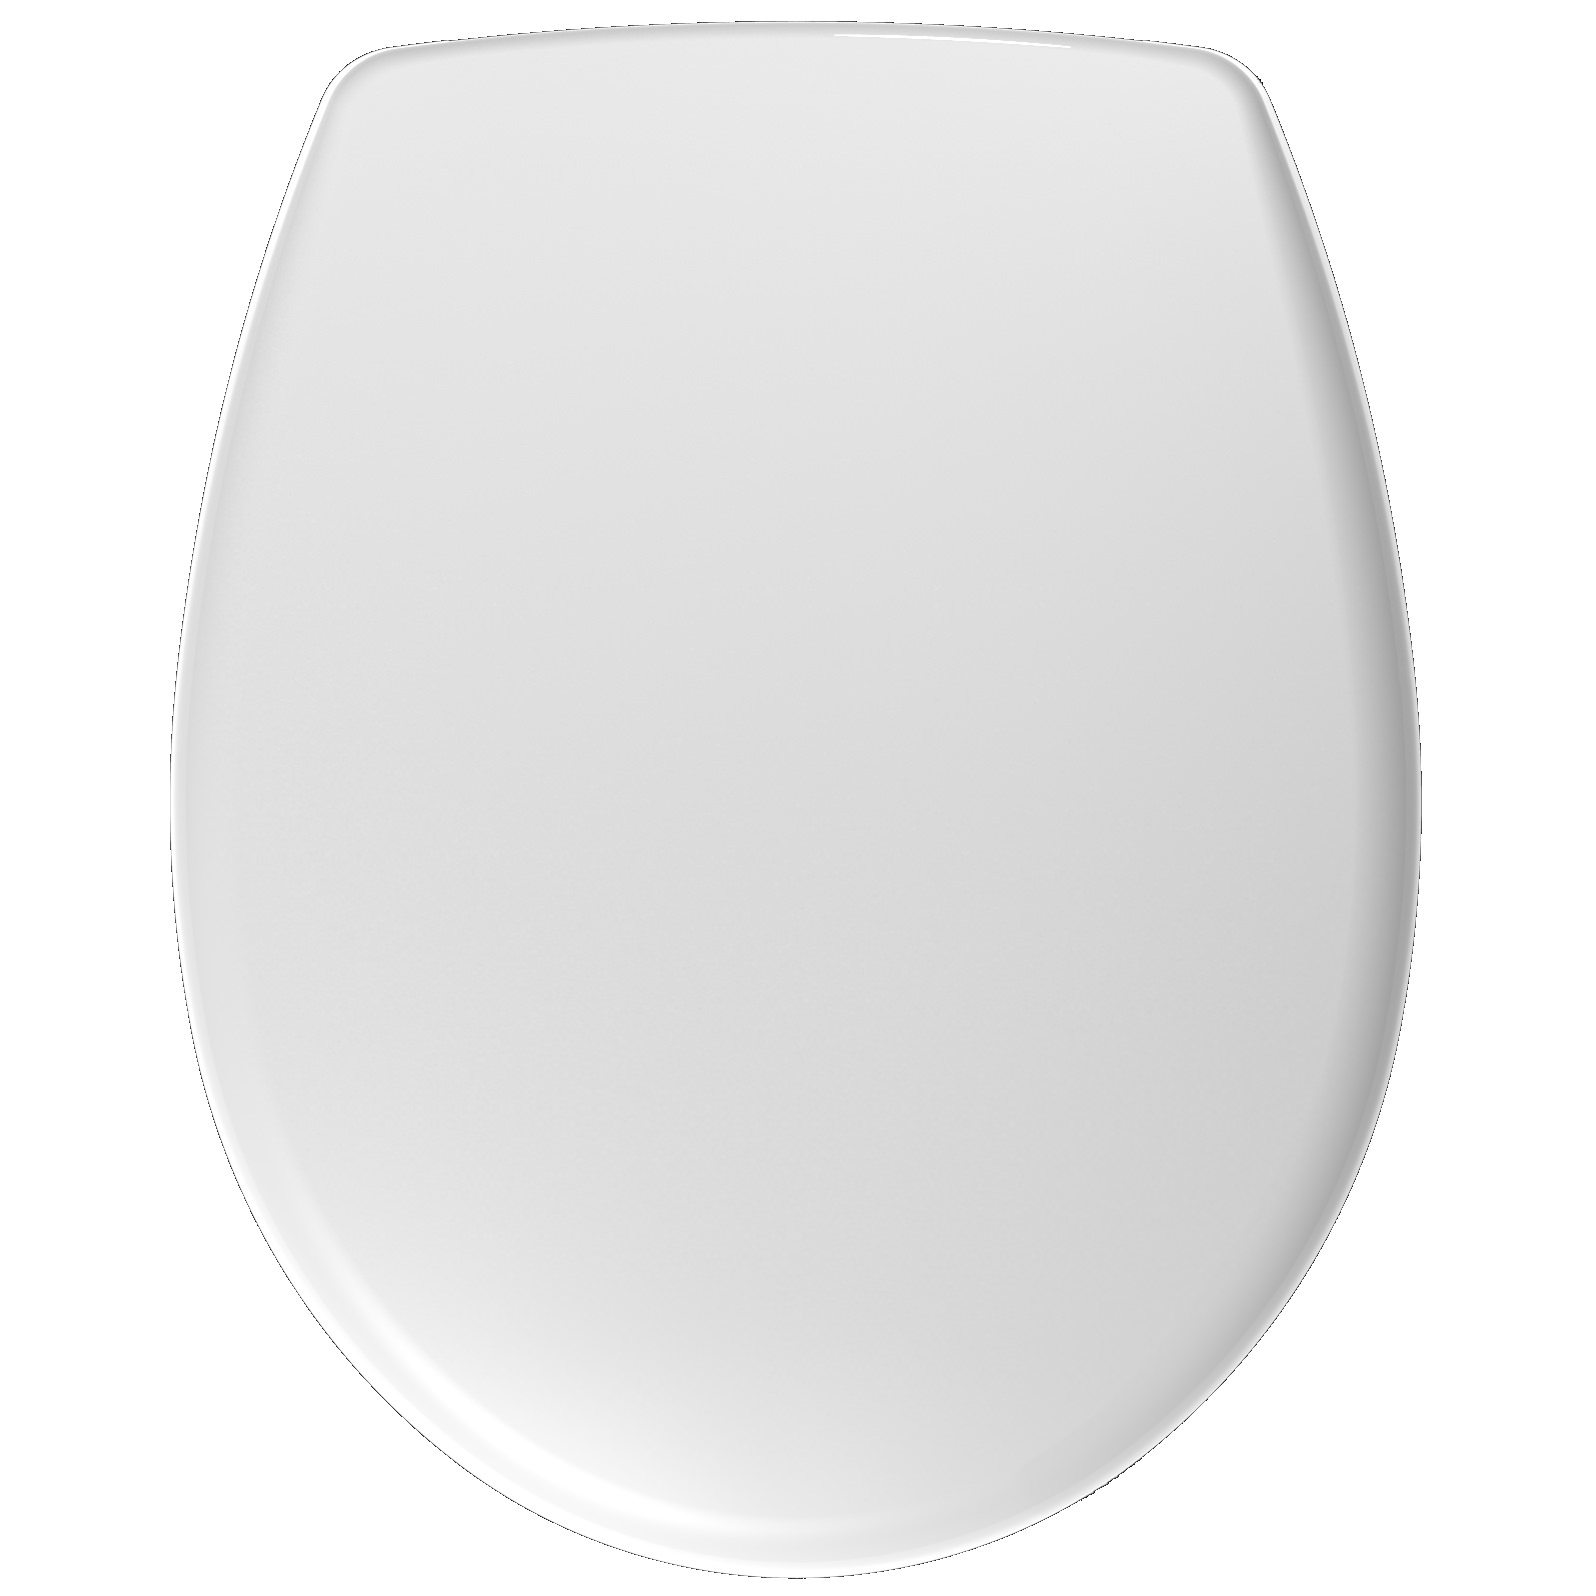 uk toilet seat sizes. Twyford Galerie Plan Soft Close Toilet Seat And Cover  GL7995WH